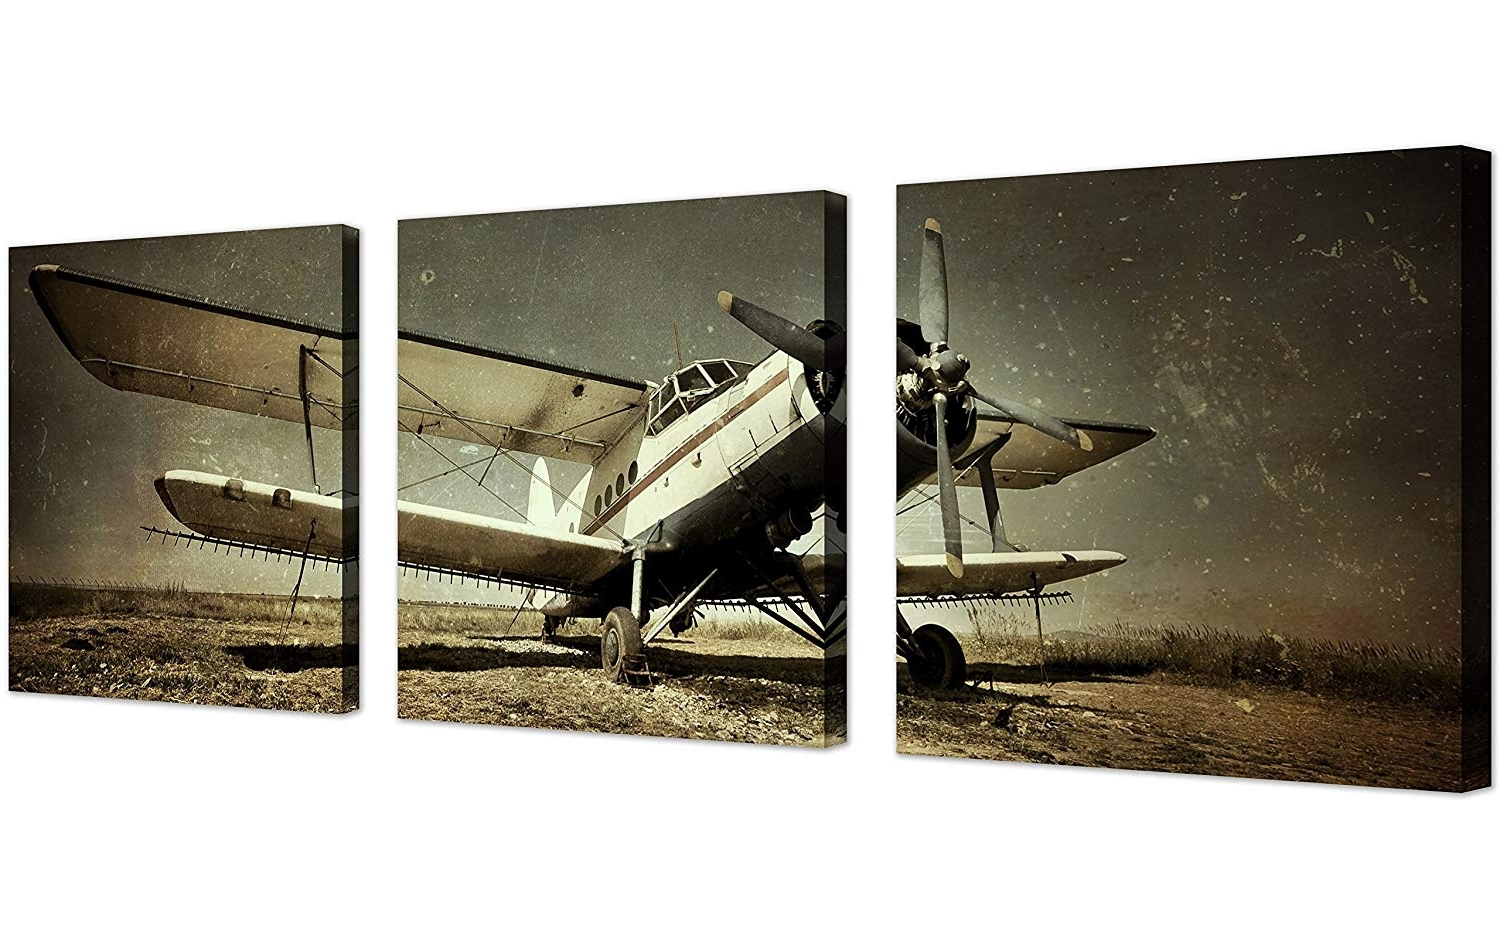 Amazon: Qicai Vintage Airplane Wall Art Giclee Canvas Vintage Throughout Well Known Airplane Wall Art (View 6 of 15)